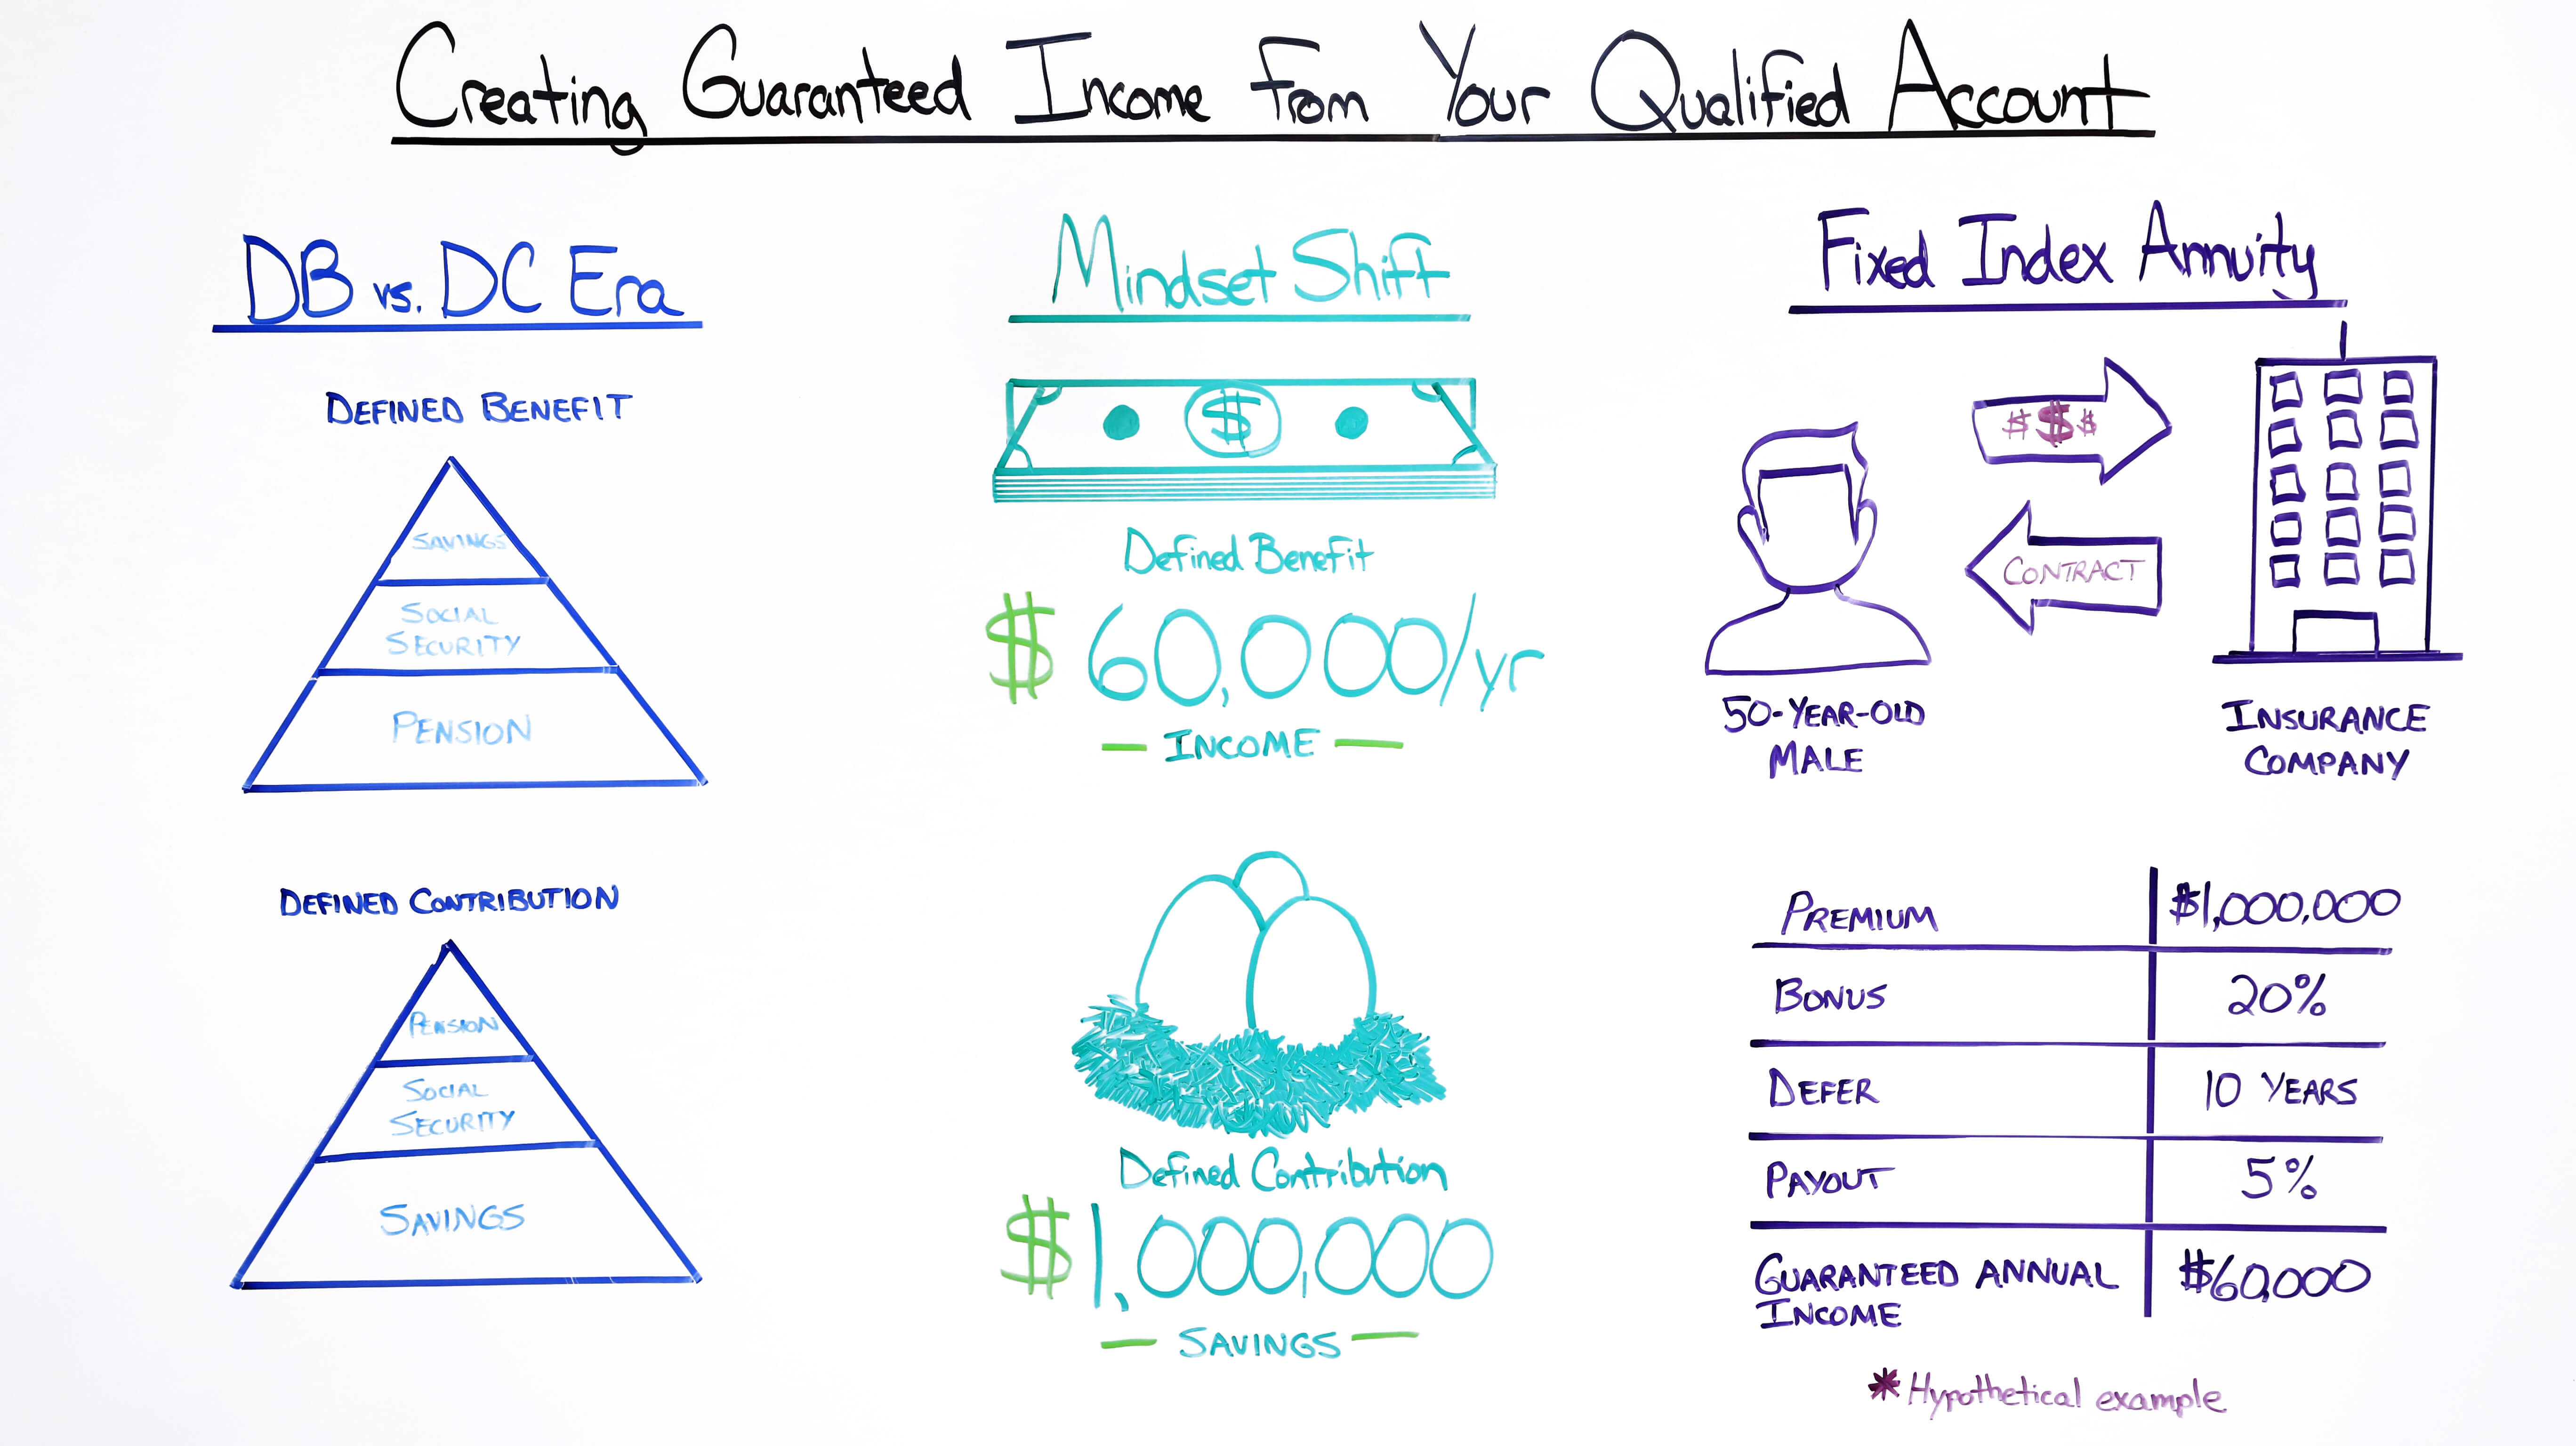 Creating Guaranteed Income From Your Qualified Account